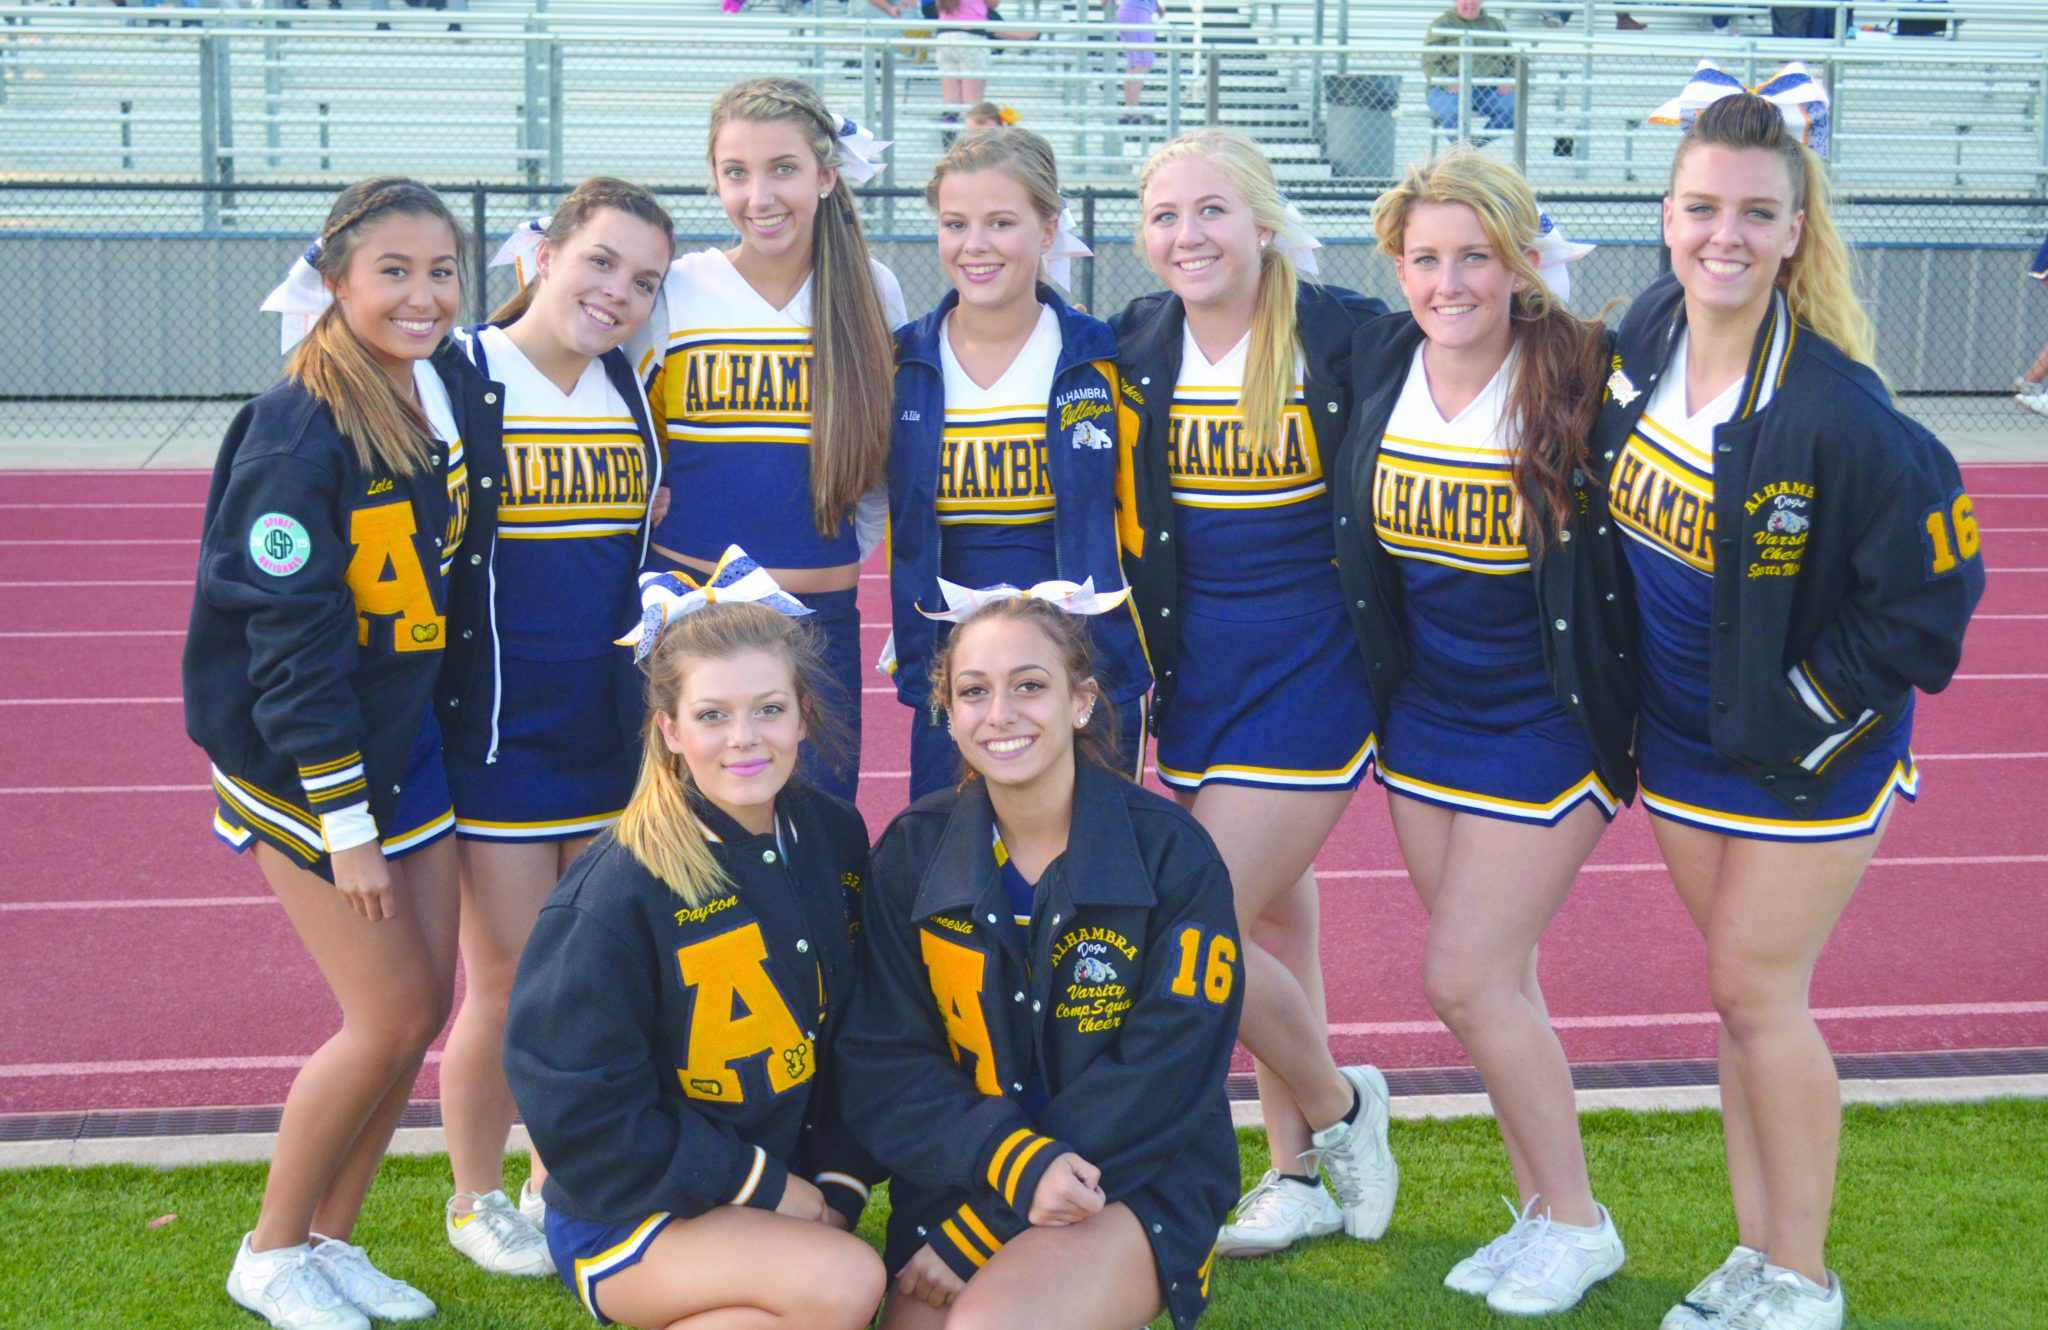 High School Bulldogs Cheerleaders Pictures To Pin On